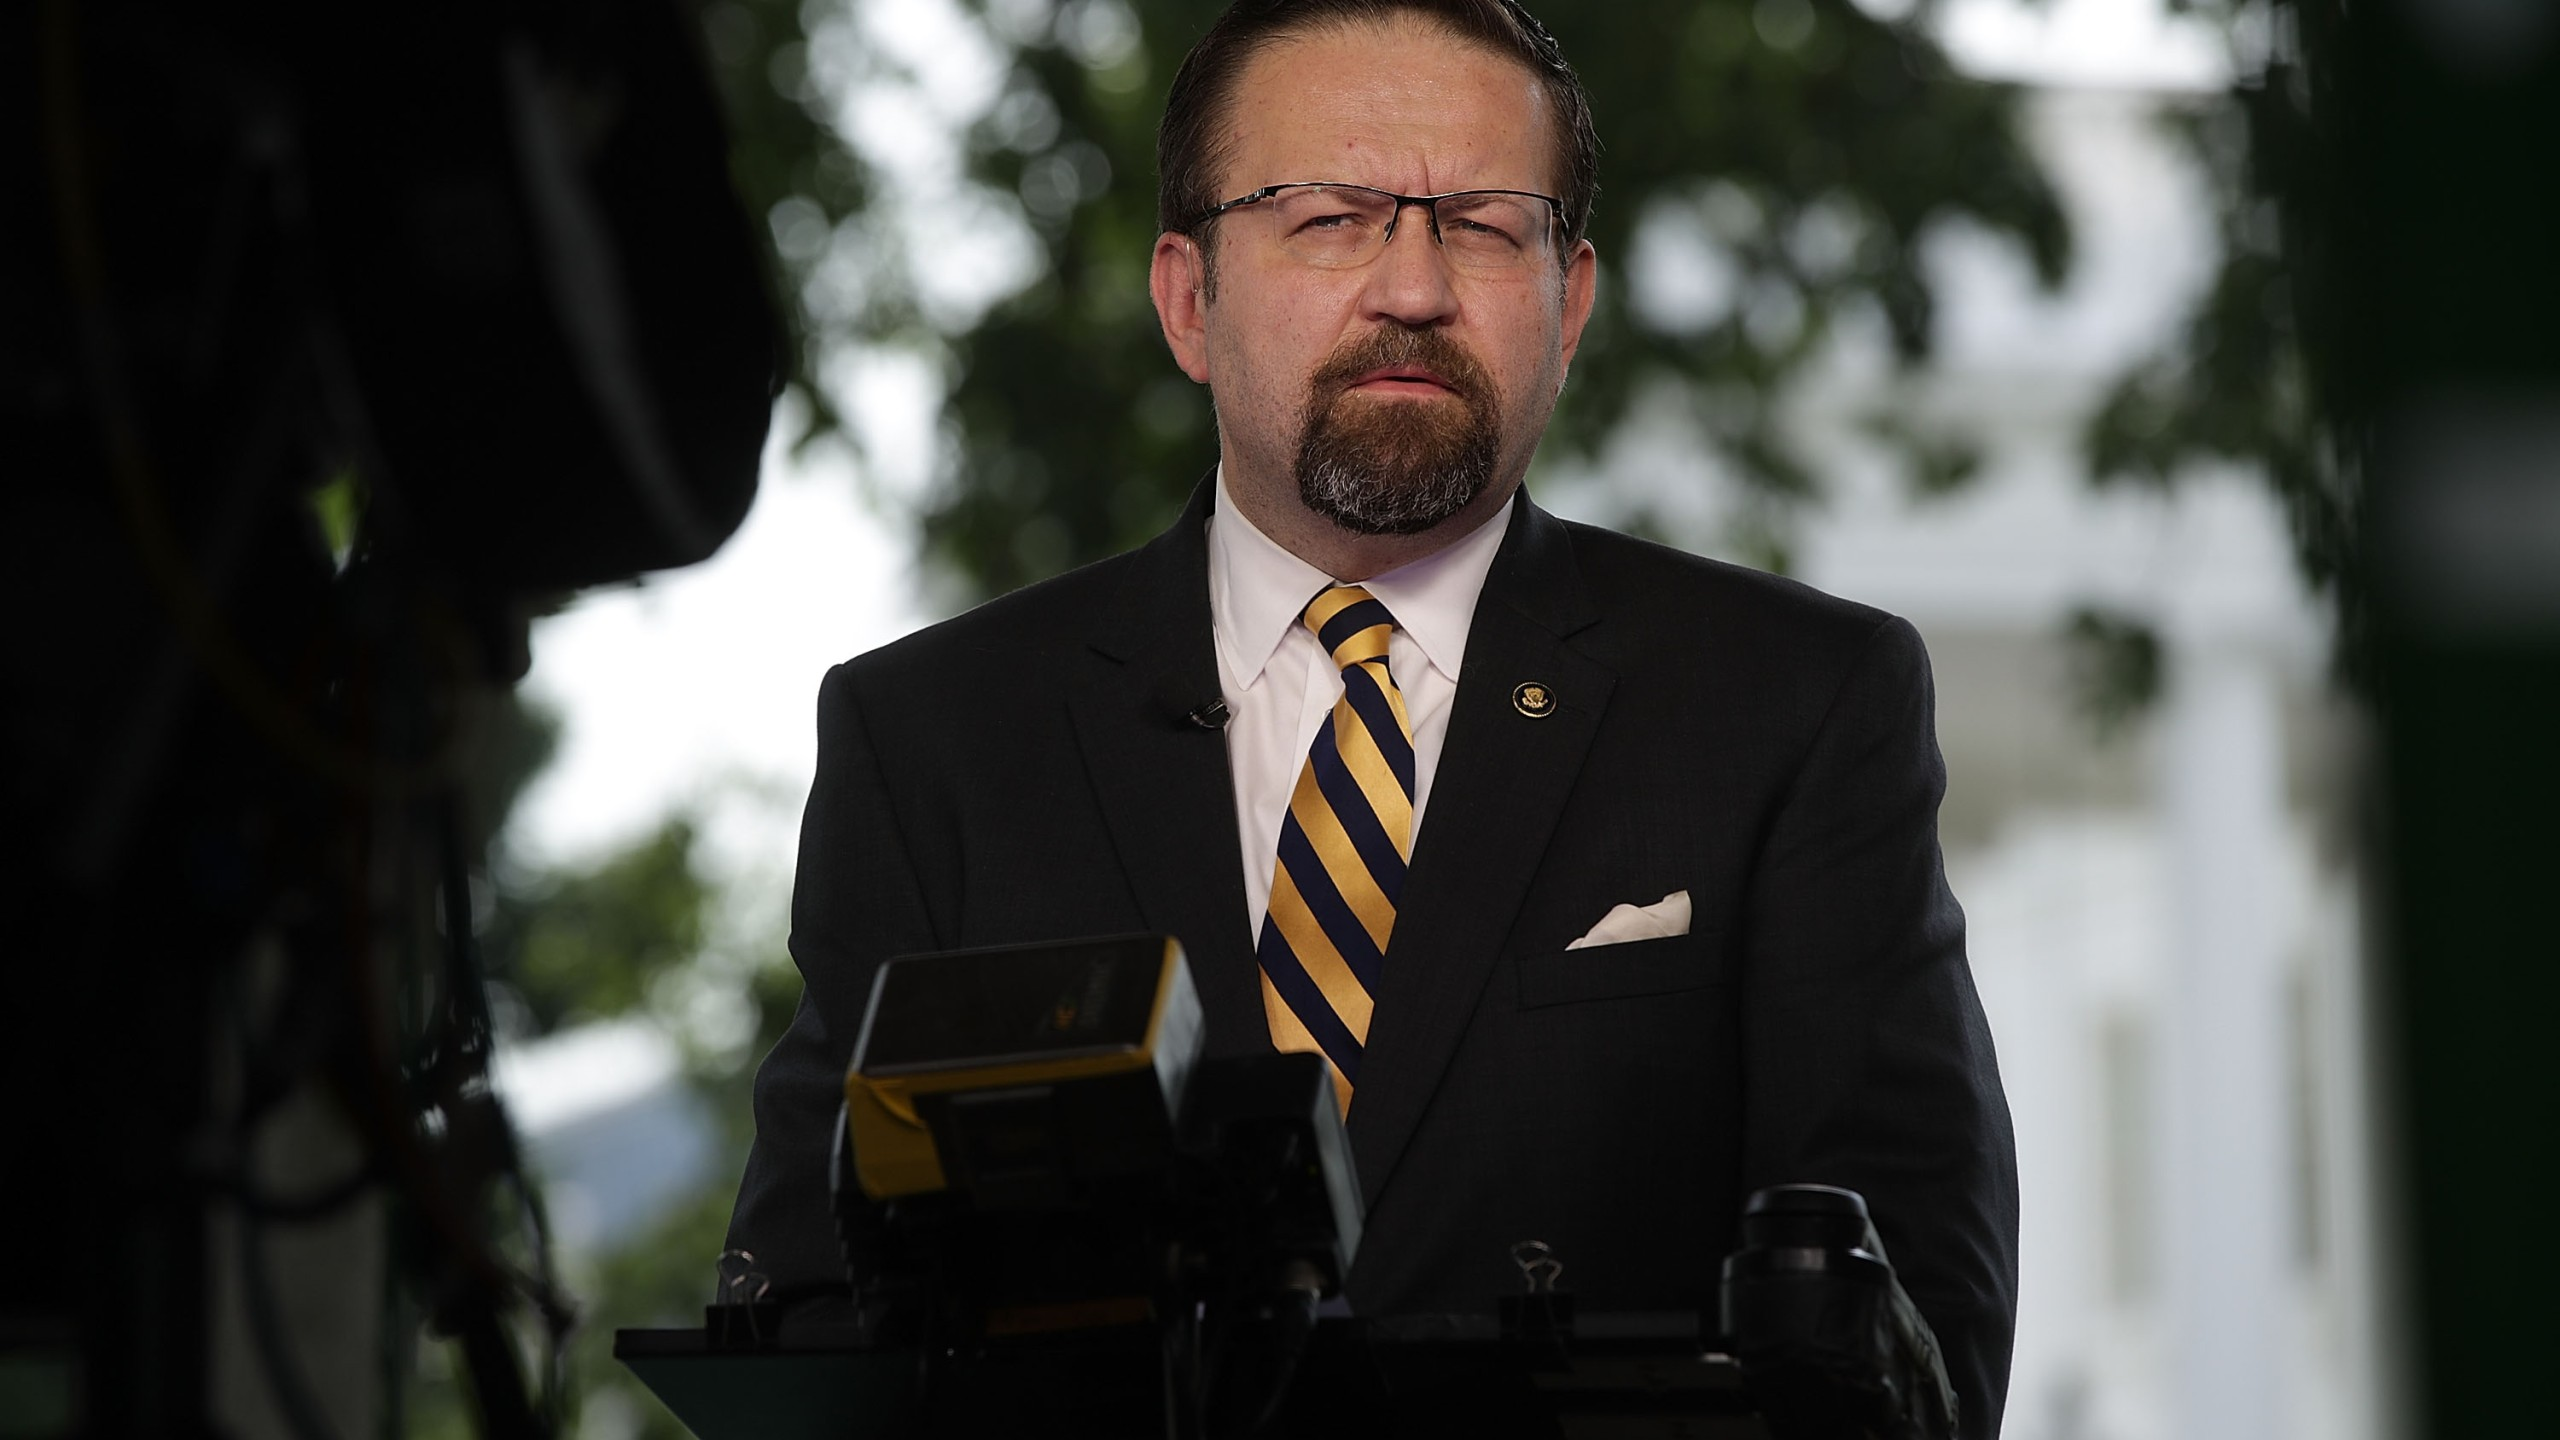 White House Deputy Assistant To The President Sebastian Gorka speaks as he is interviewed by Fox News remotely from the White House June 22, 2017, in Washington, DC. (Credit: Alex Wong / Getty Images)